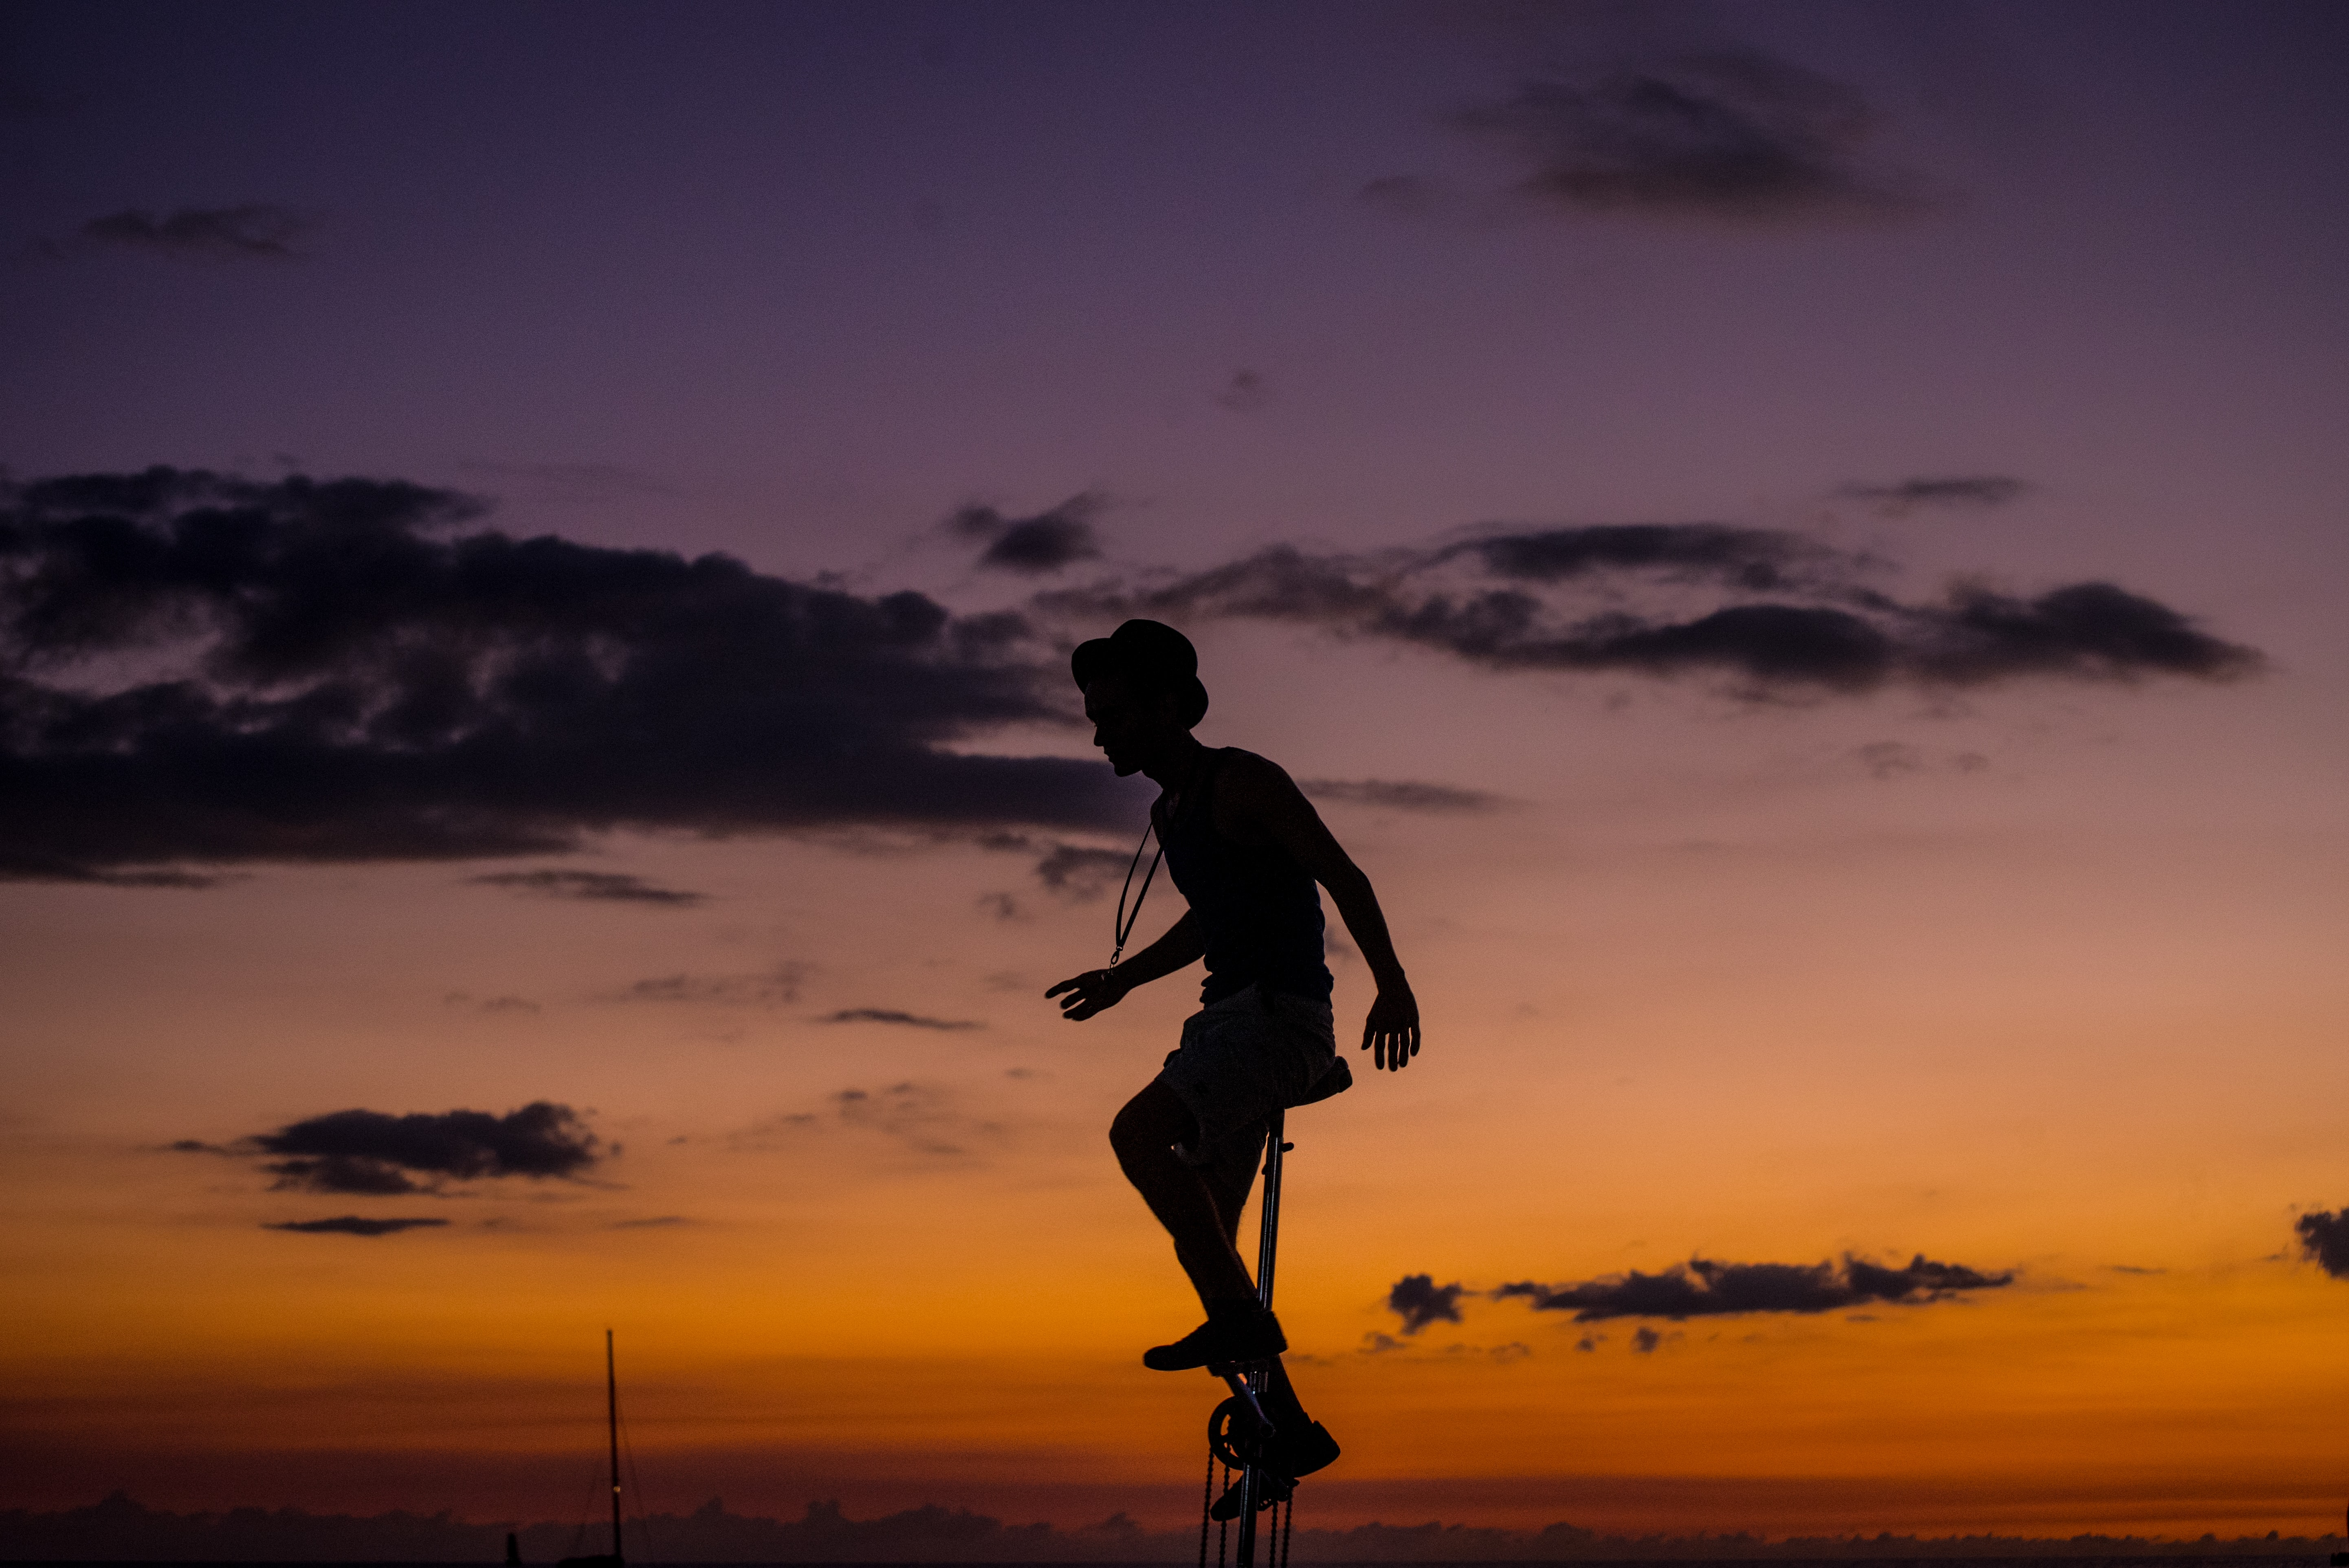 silhouette photo of man riding unicycle